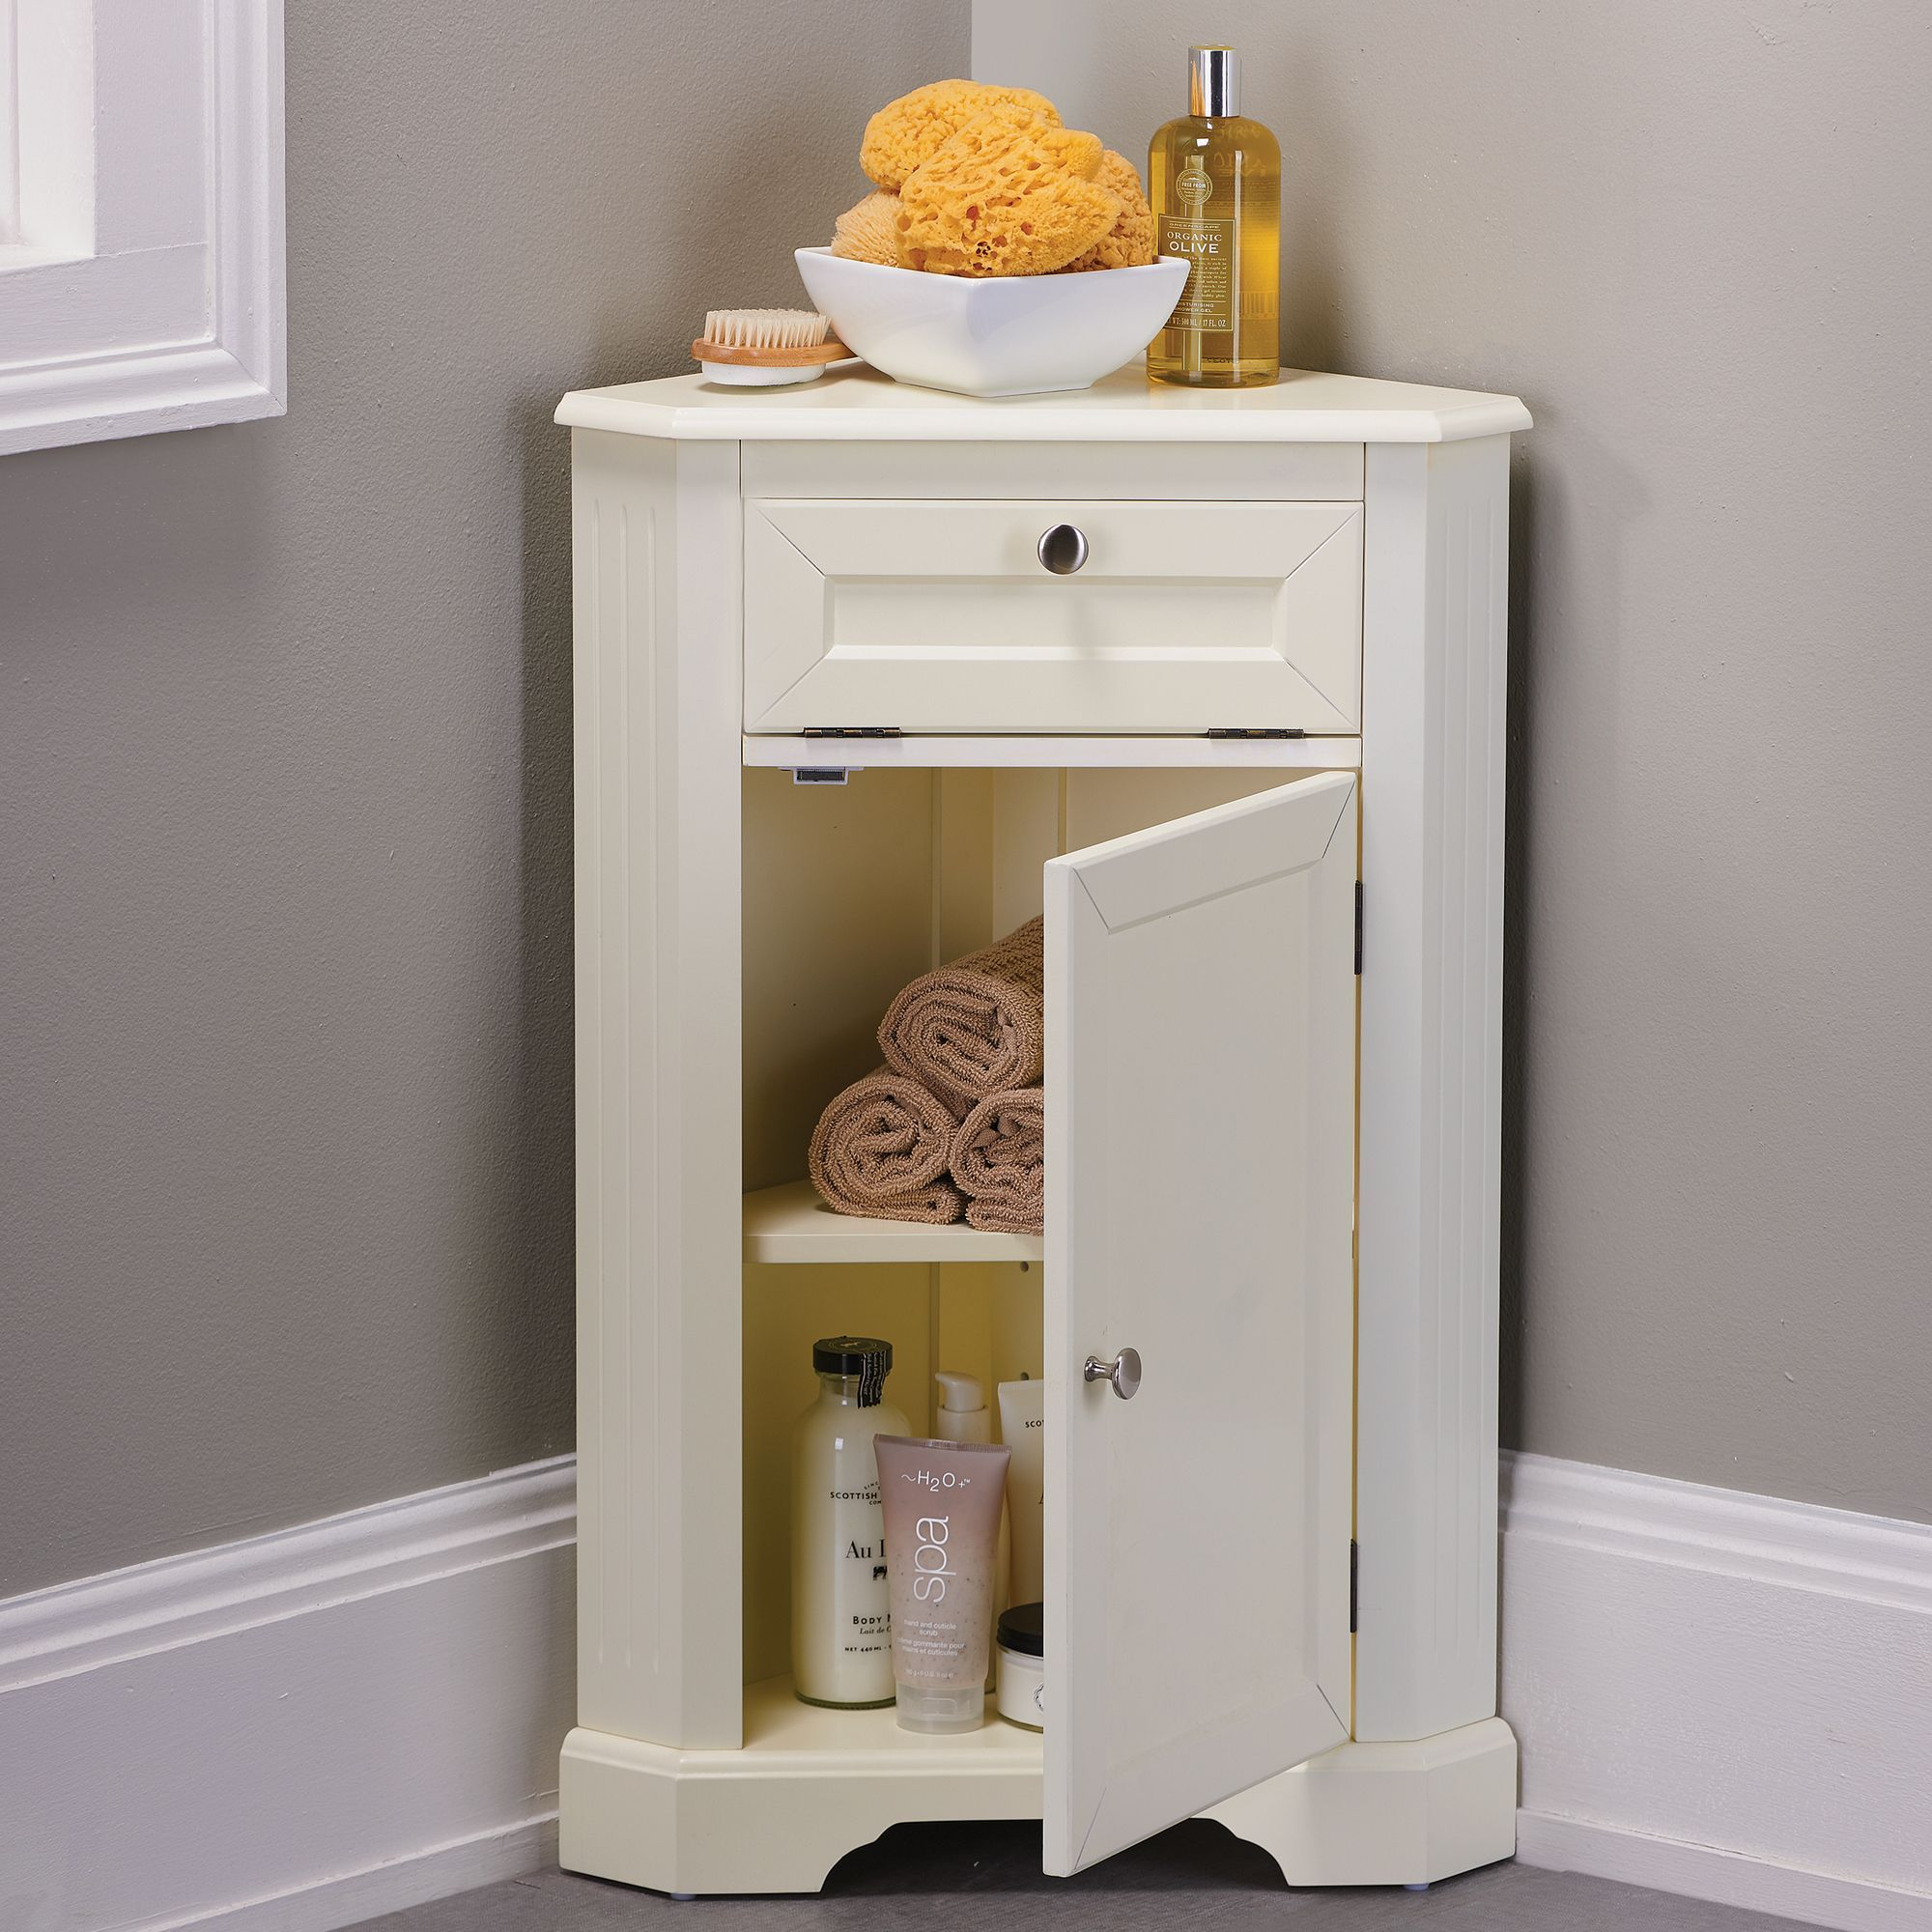 Weatherby Bathroom Corner Storage Cabinet | Corner storage, Bathroom ...